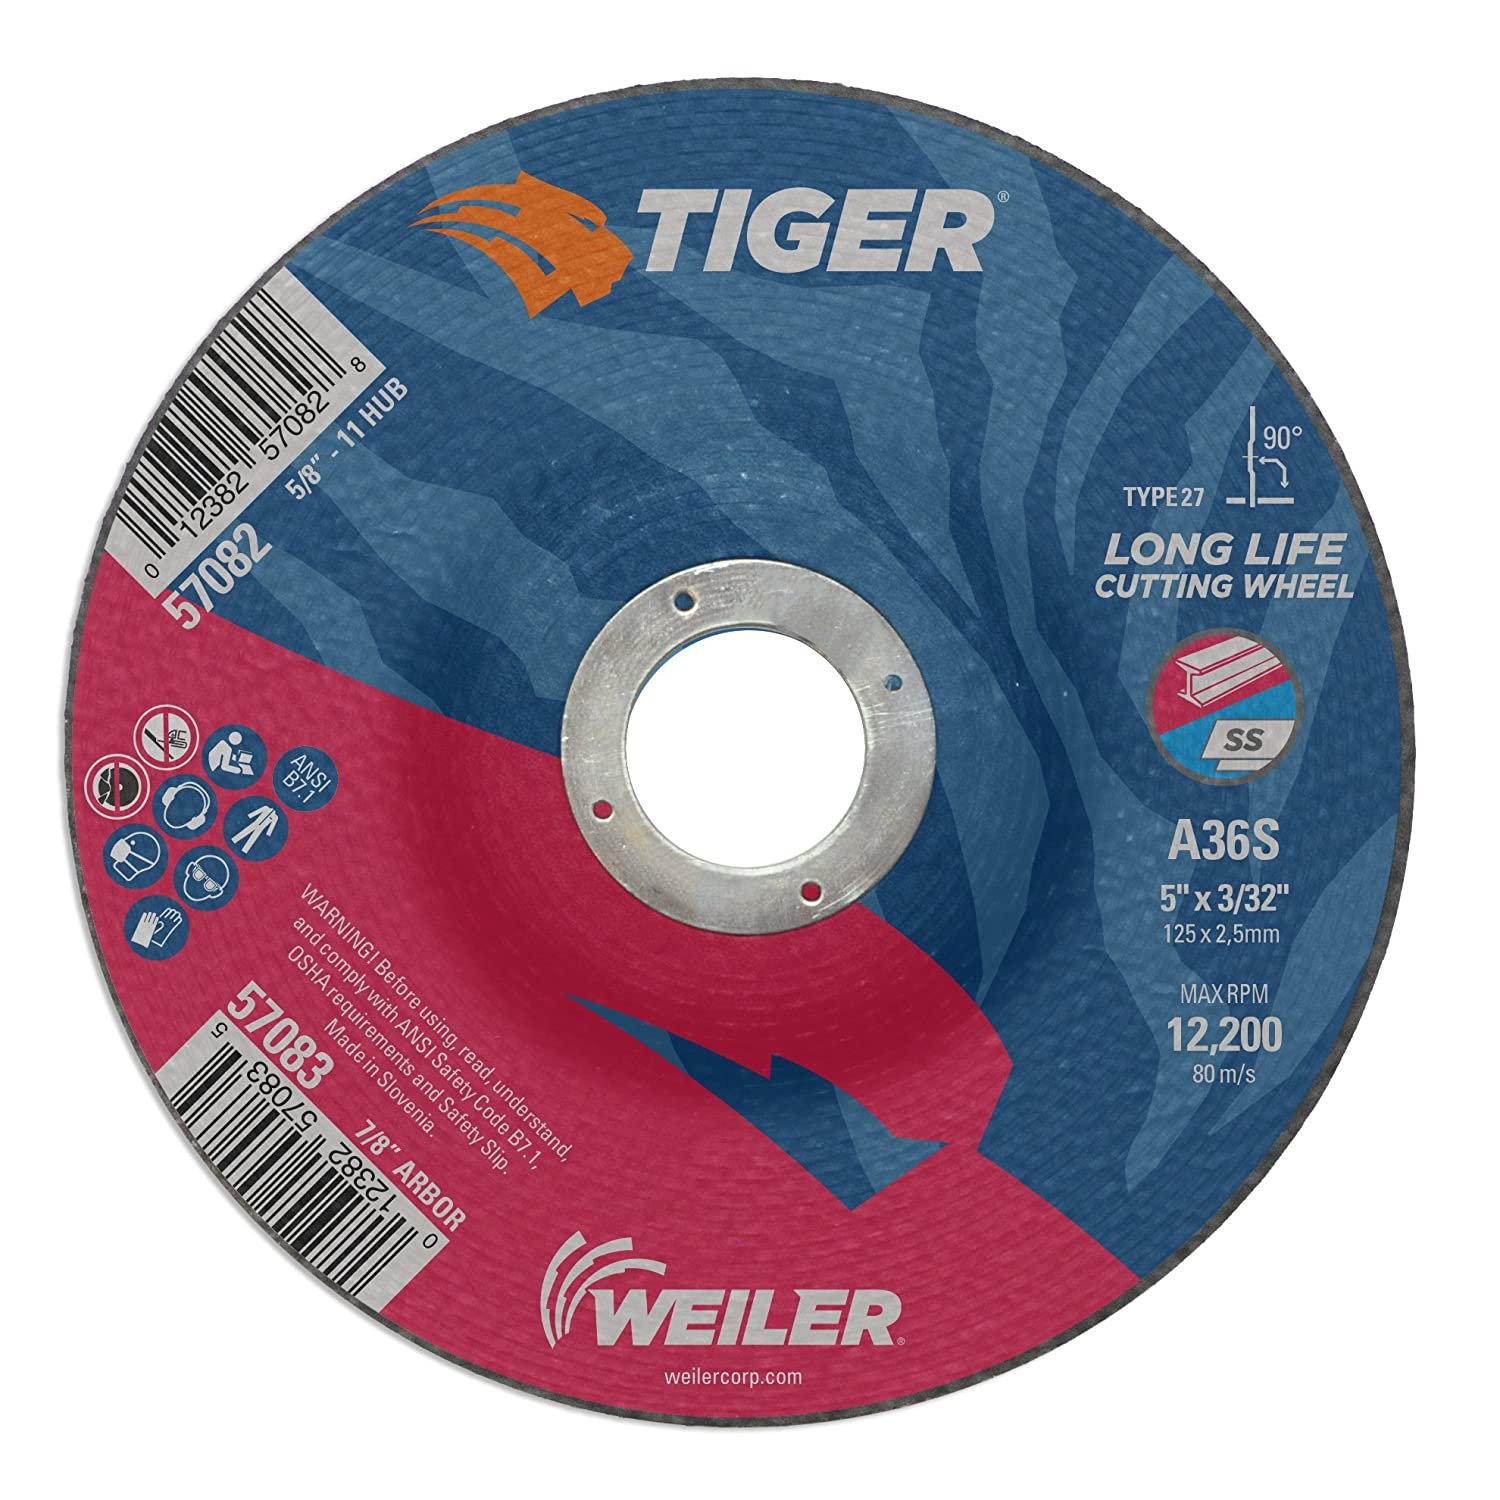 7//8 A.H. Pack of 25 Pack of 25 7//8 A.H. Weiler 57083 5 x 3//32 Tiger Type 27 Cutting Wheel A60T